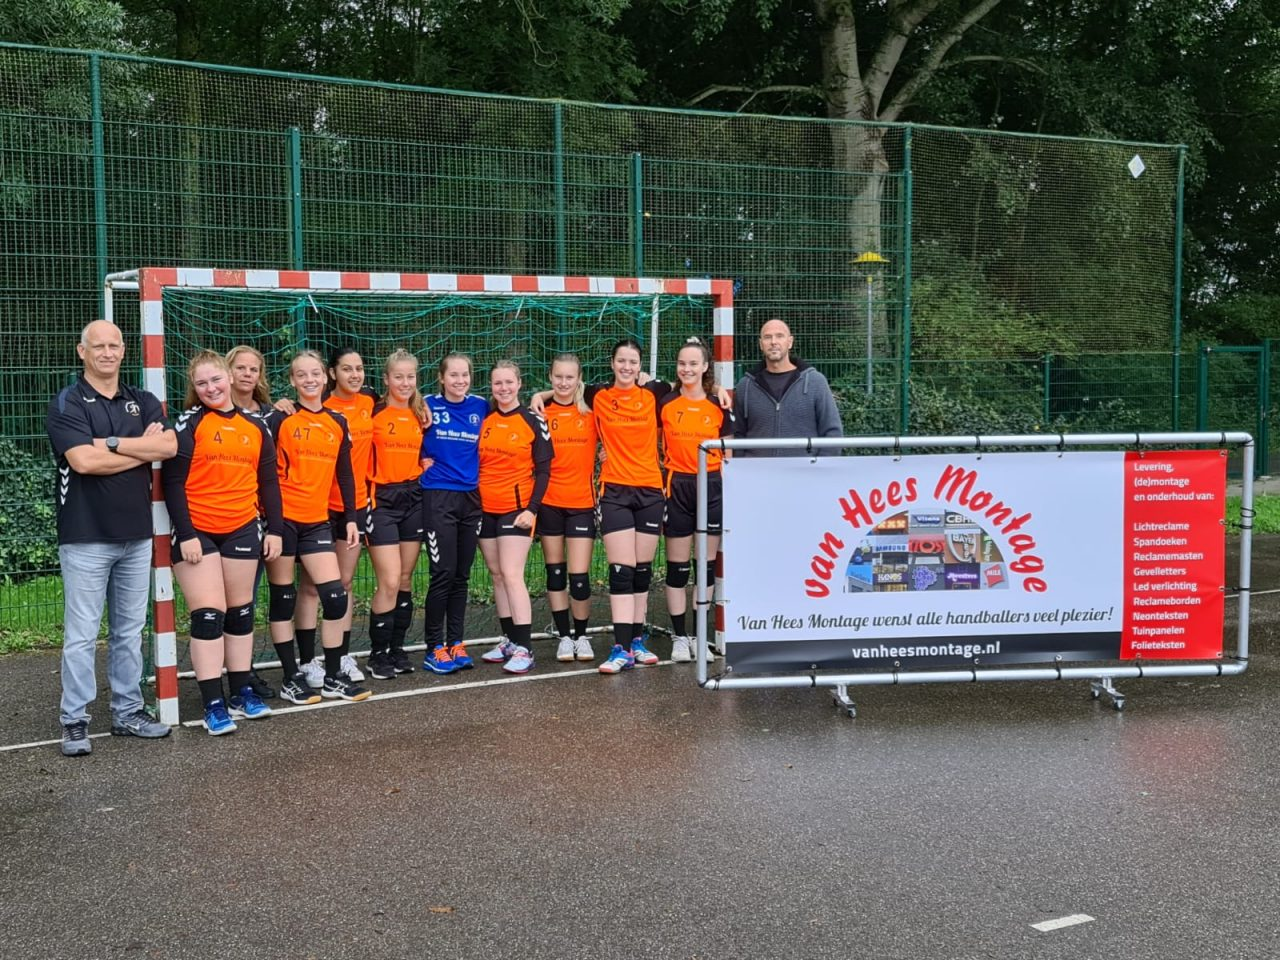 https://www.handbalvereniginglelystad.nl/wp-content/uploads/2020/09/WhatsApp-Image-2020-09-27-at-09.43.10-1280x960.jpeg